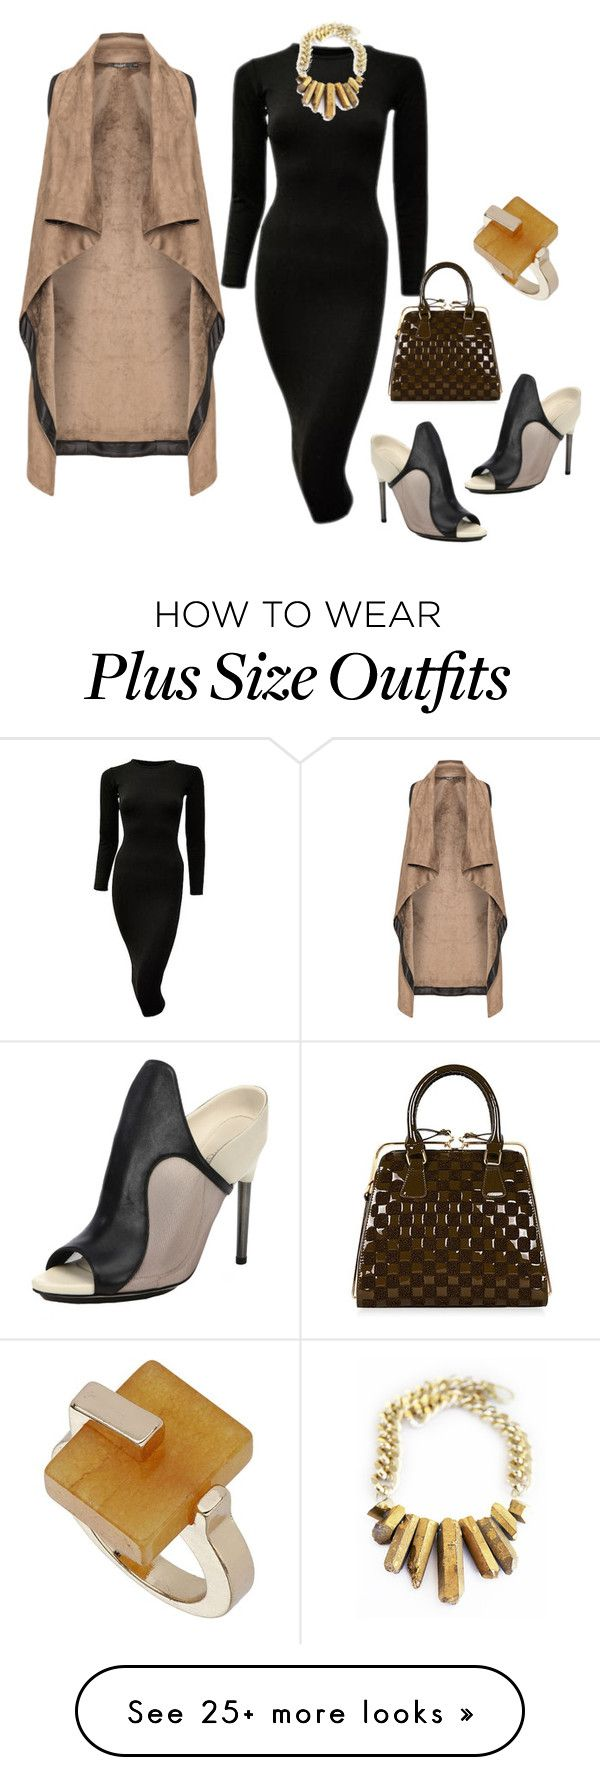 """""""Untitled #414"""" by steflsamour on Polyvore featuring 3.1 Phillip Lim, Dorothy Perkins, Mat, women's clothing, women's fashion, women, female, woman, misses and juniors"""